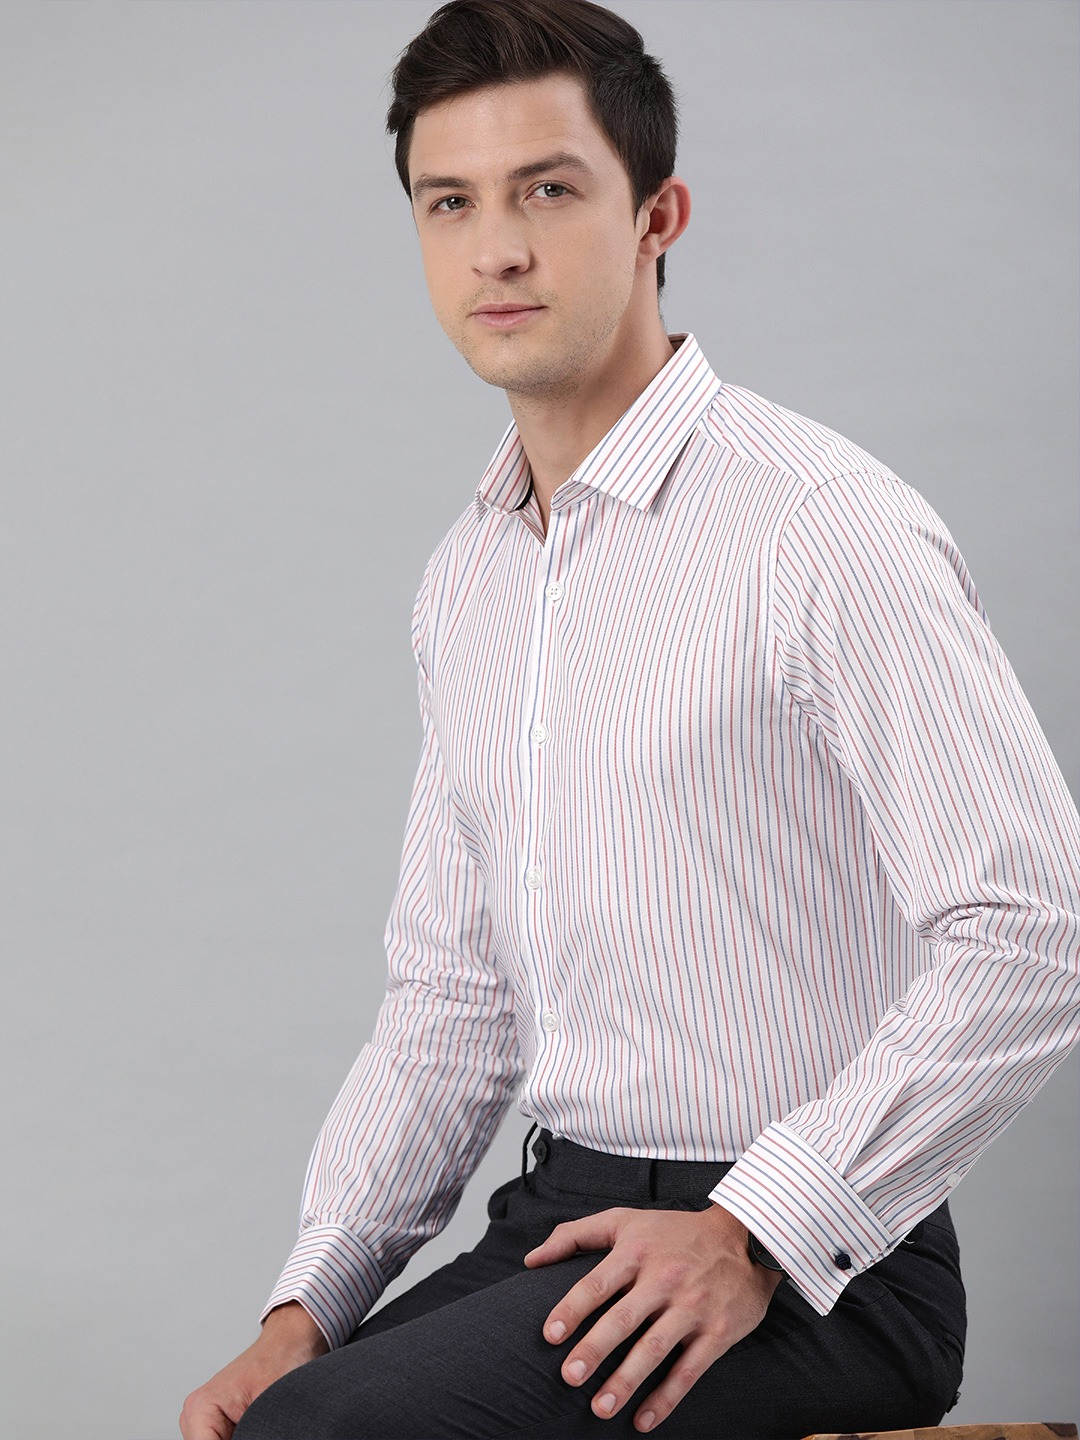 The Bear House | THE BEAR HOUSE Men White  Navy Blue Slim Fit Striped French-Cuff Formal Shirt